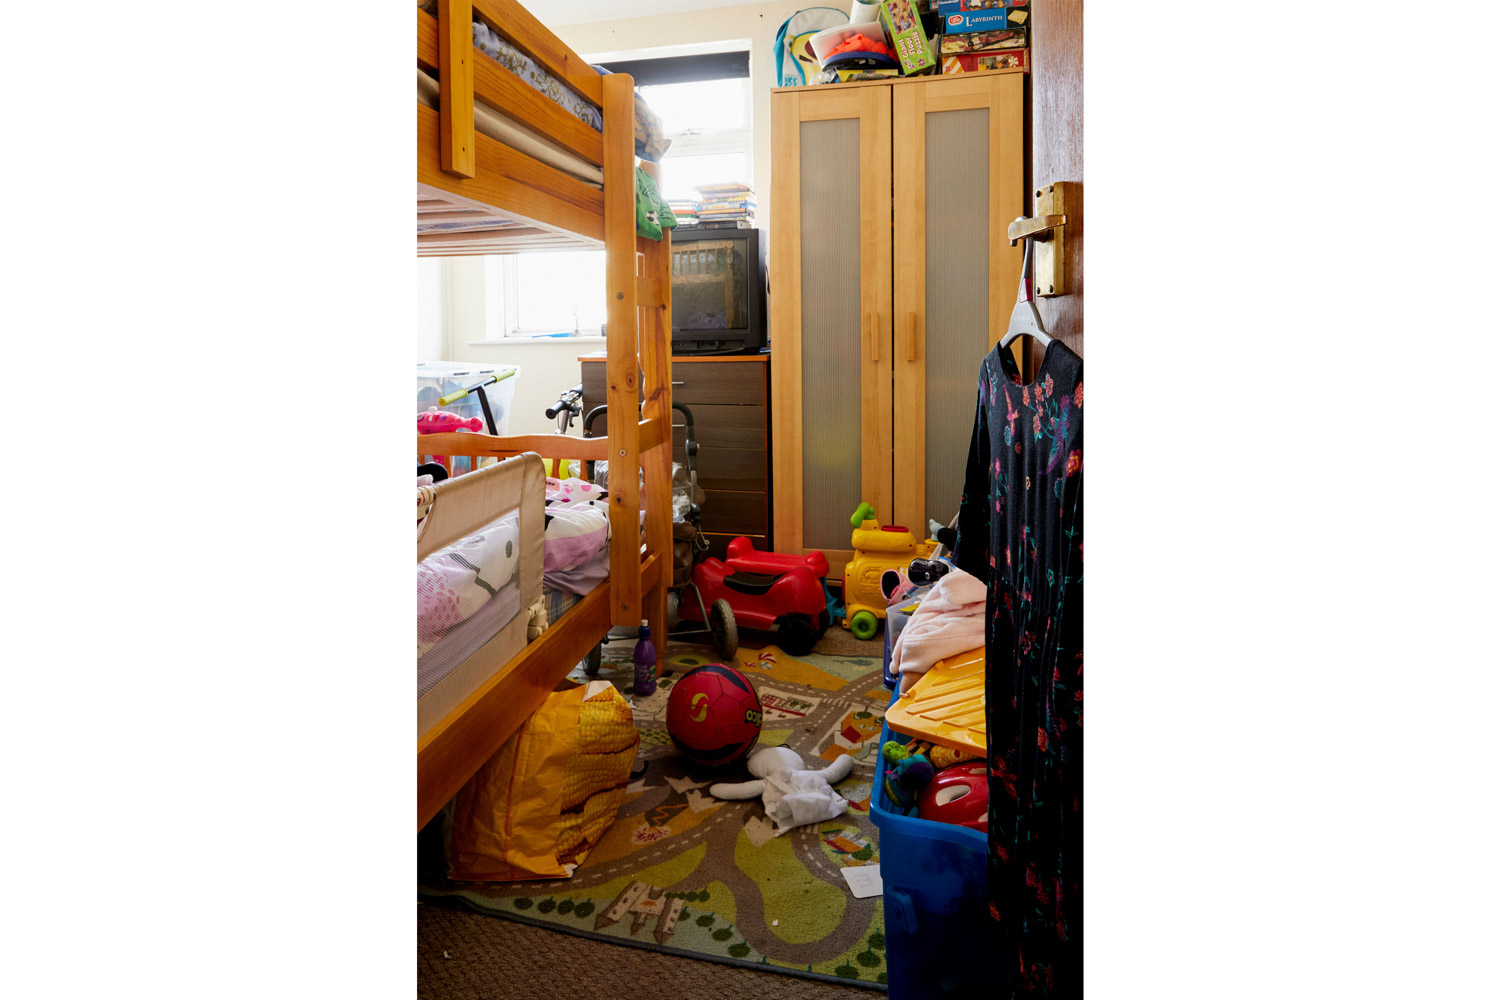 Dillan and Rachel   This room is shared by Dillan, eight, and his little sister Rachel. They live in temporary accommodation with their mum. There is no space in the flat for their older brother Kyle, who lives with his grandma. The kids were split up in 2016 when they left their home for a women's refuge. Their mum, Deborah, was being raped by their dad.  Four—year-old Rachel still spends time with him in Sussex. The court permits these visits if he locks himself in his bedroom at night, but Rachel says she sleeps in her dad's bed.  Social Services say they can't do anything, and they shift the conversation towards Deborah's previous drug addiction.